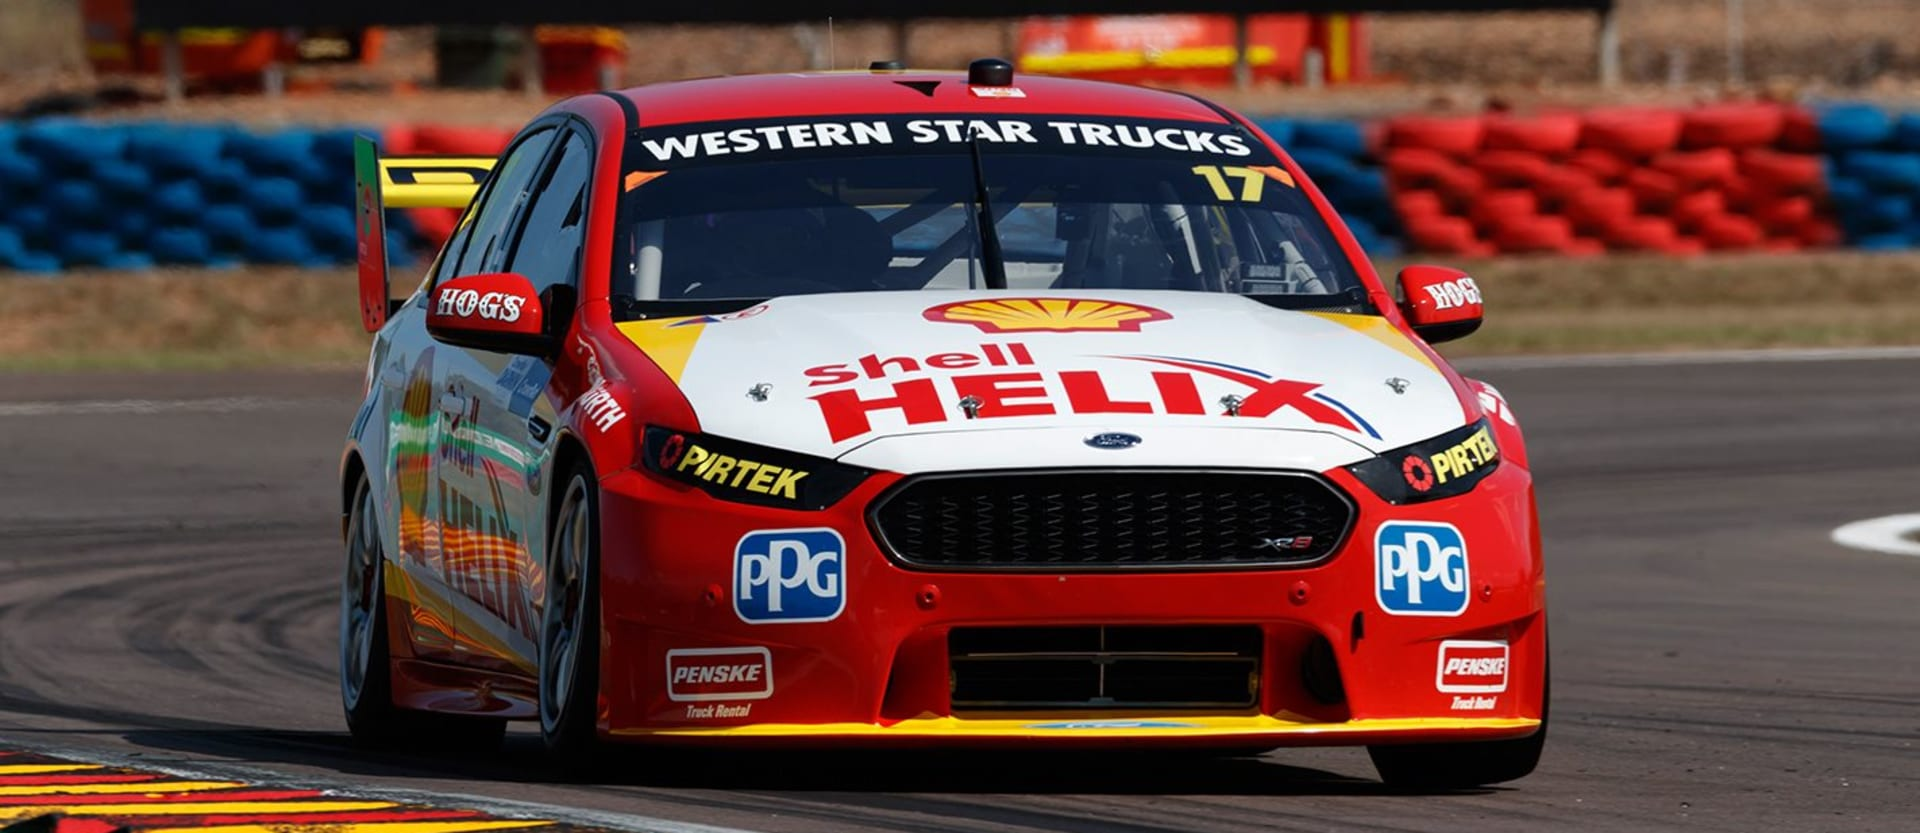 NASCAR appeal lures McLaughlin to DJR Team Penske